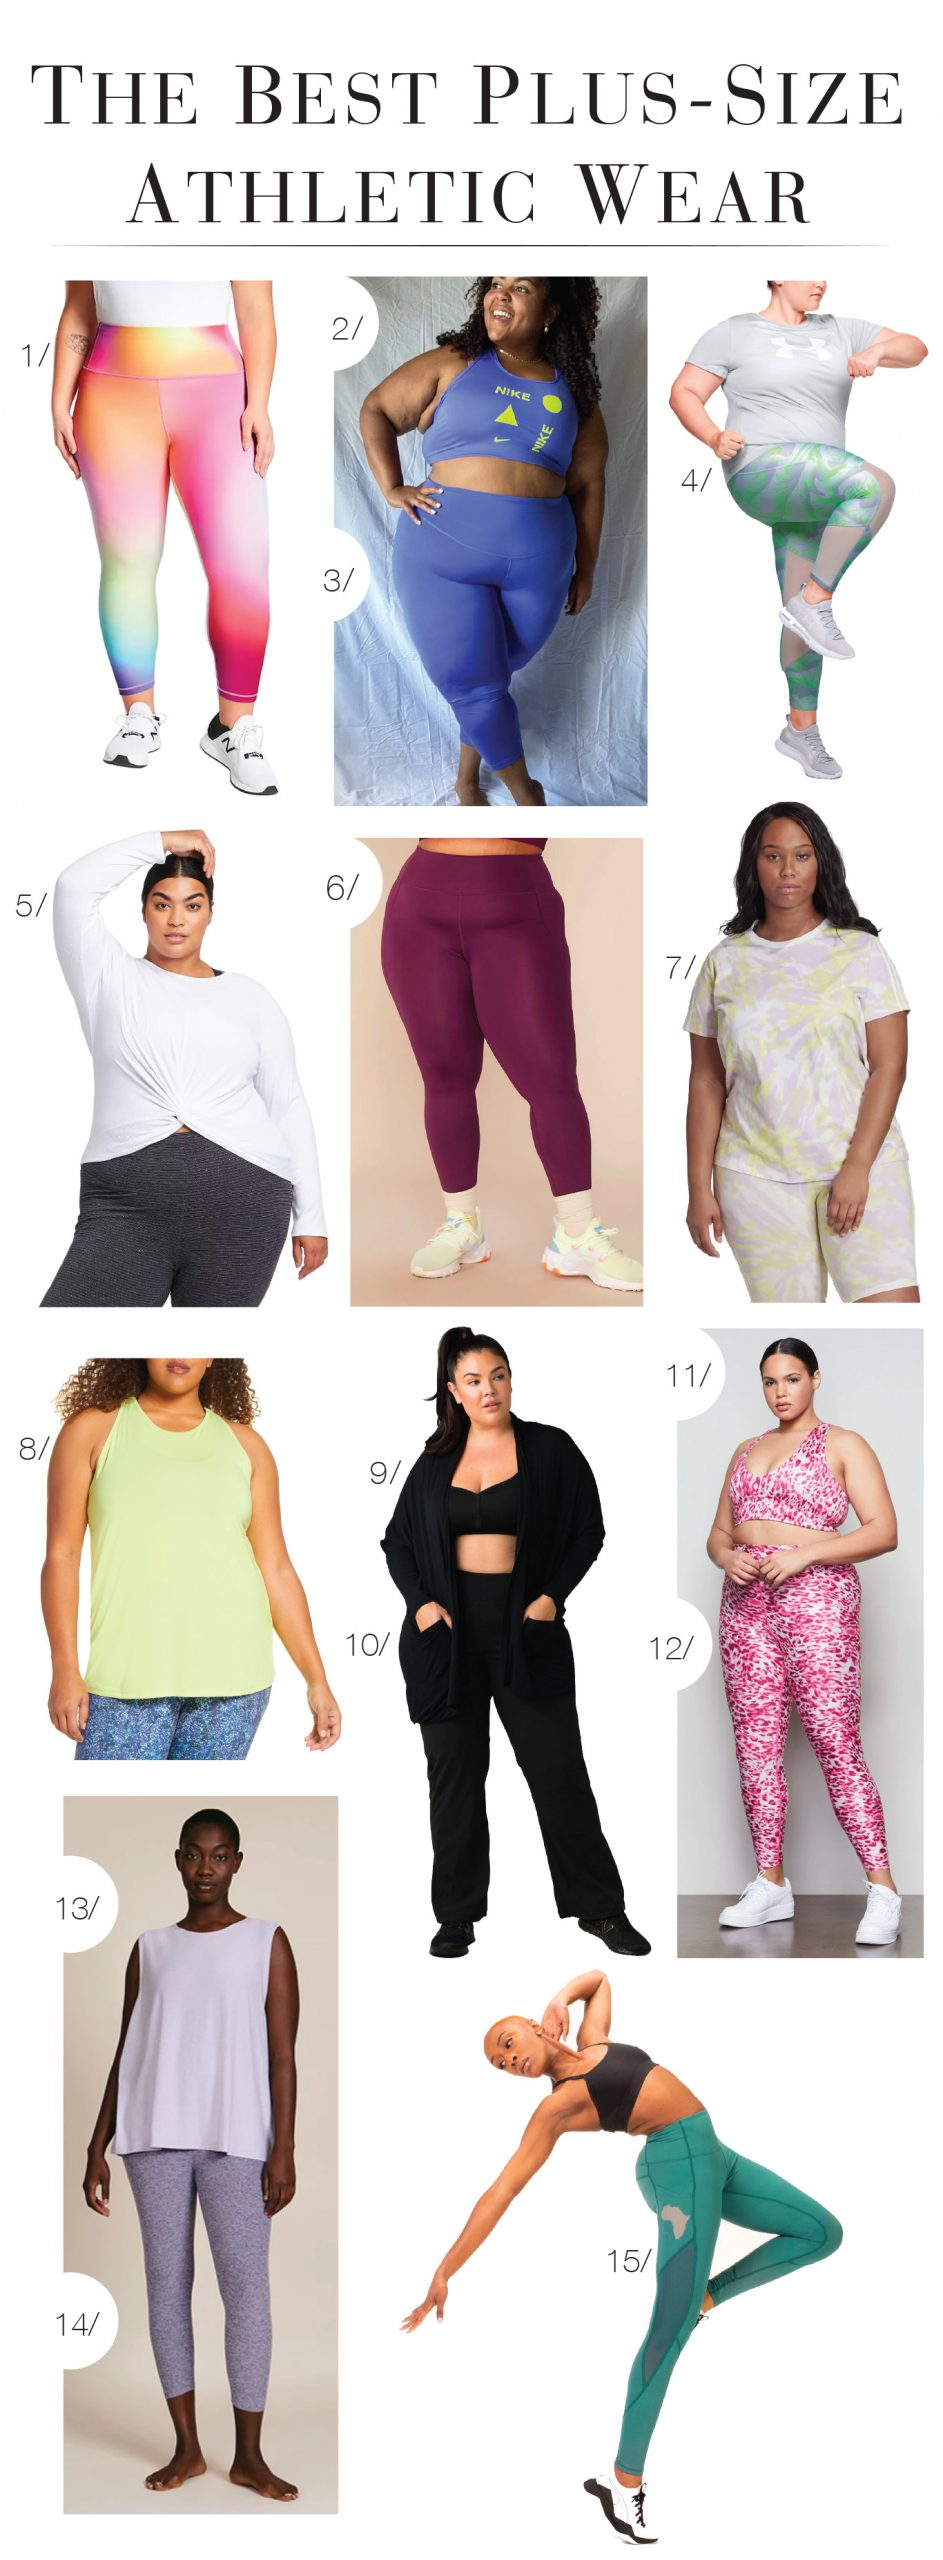 We're thrilled these brands offer plus-size activewear & can't wait to shake our bum bum. Under Armour, Adidas, Prana, Zella, Athleta & Nike are killing it.